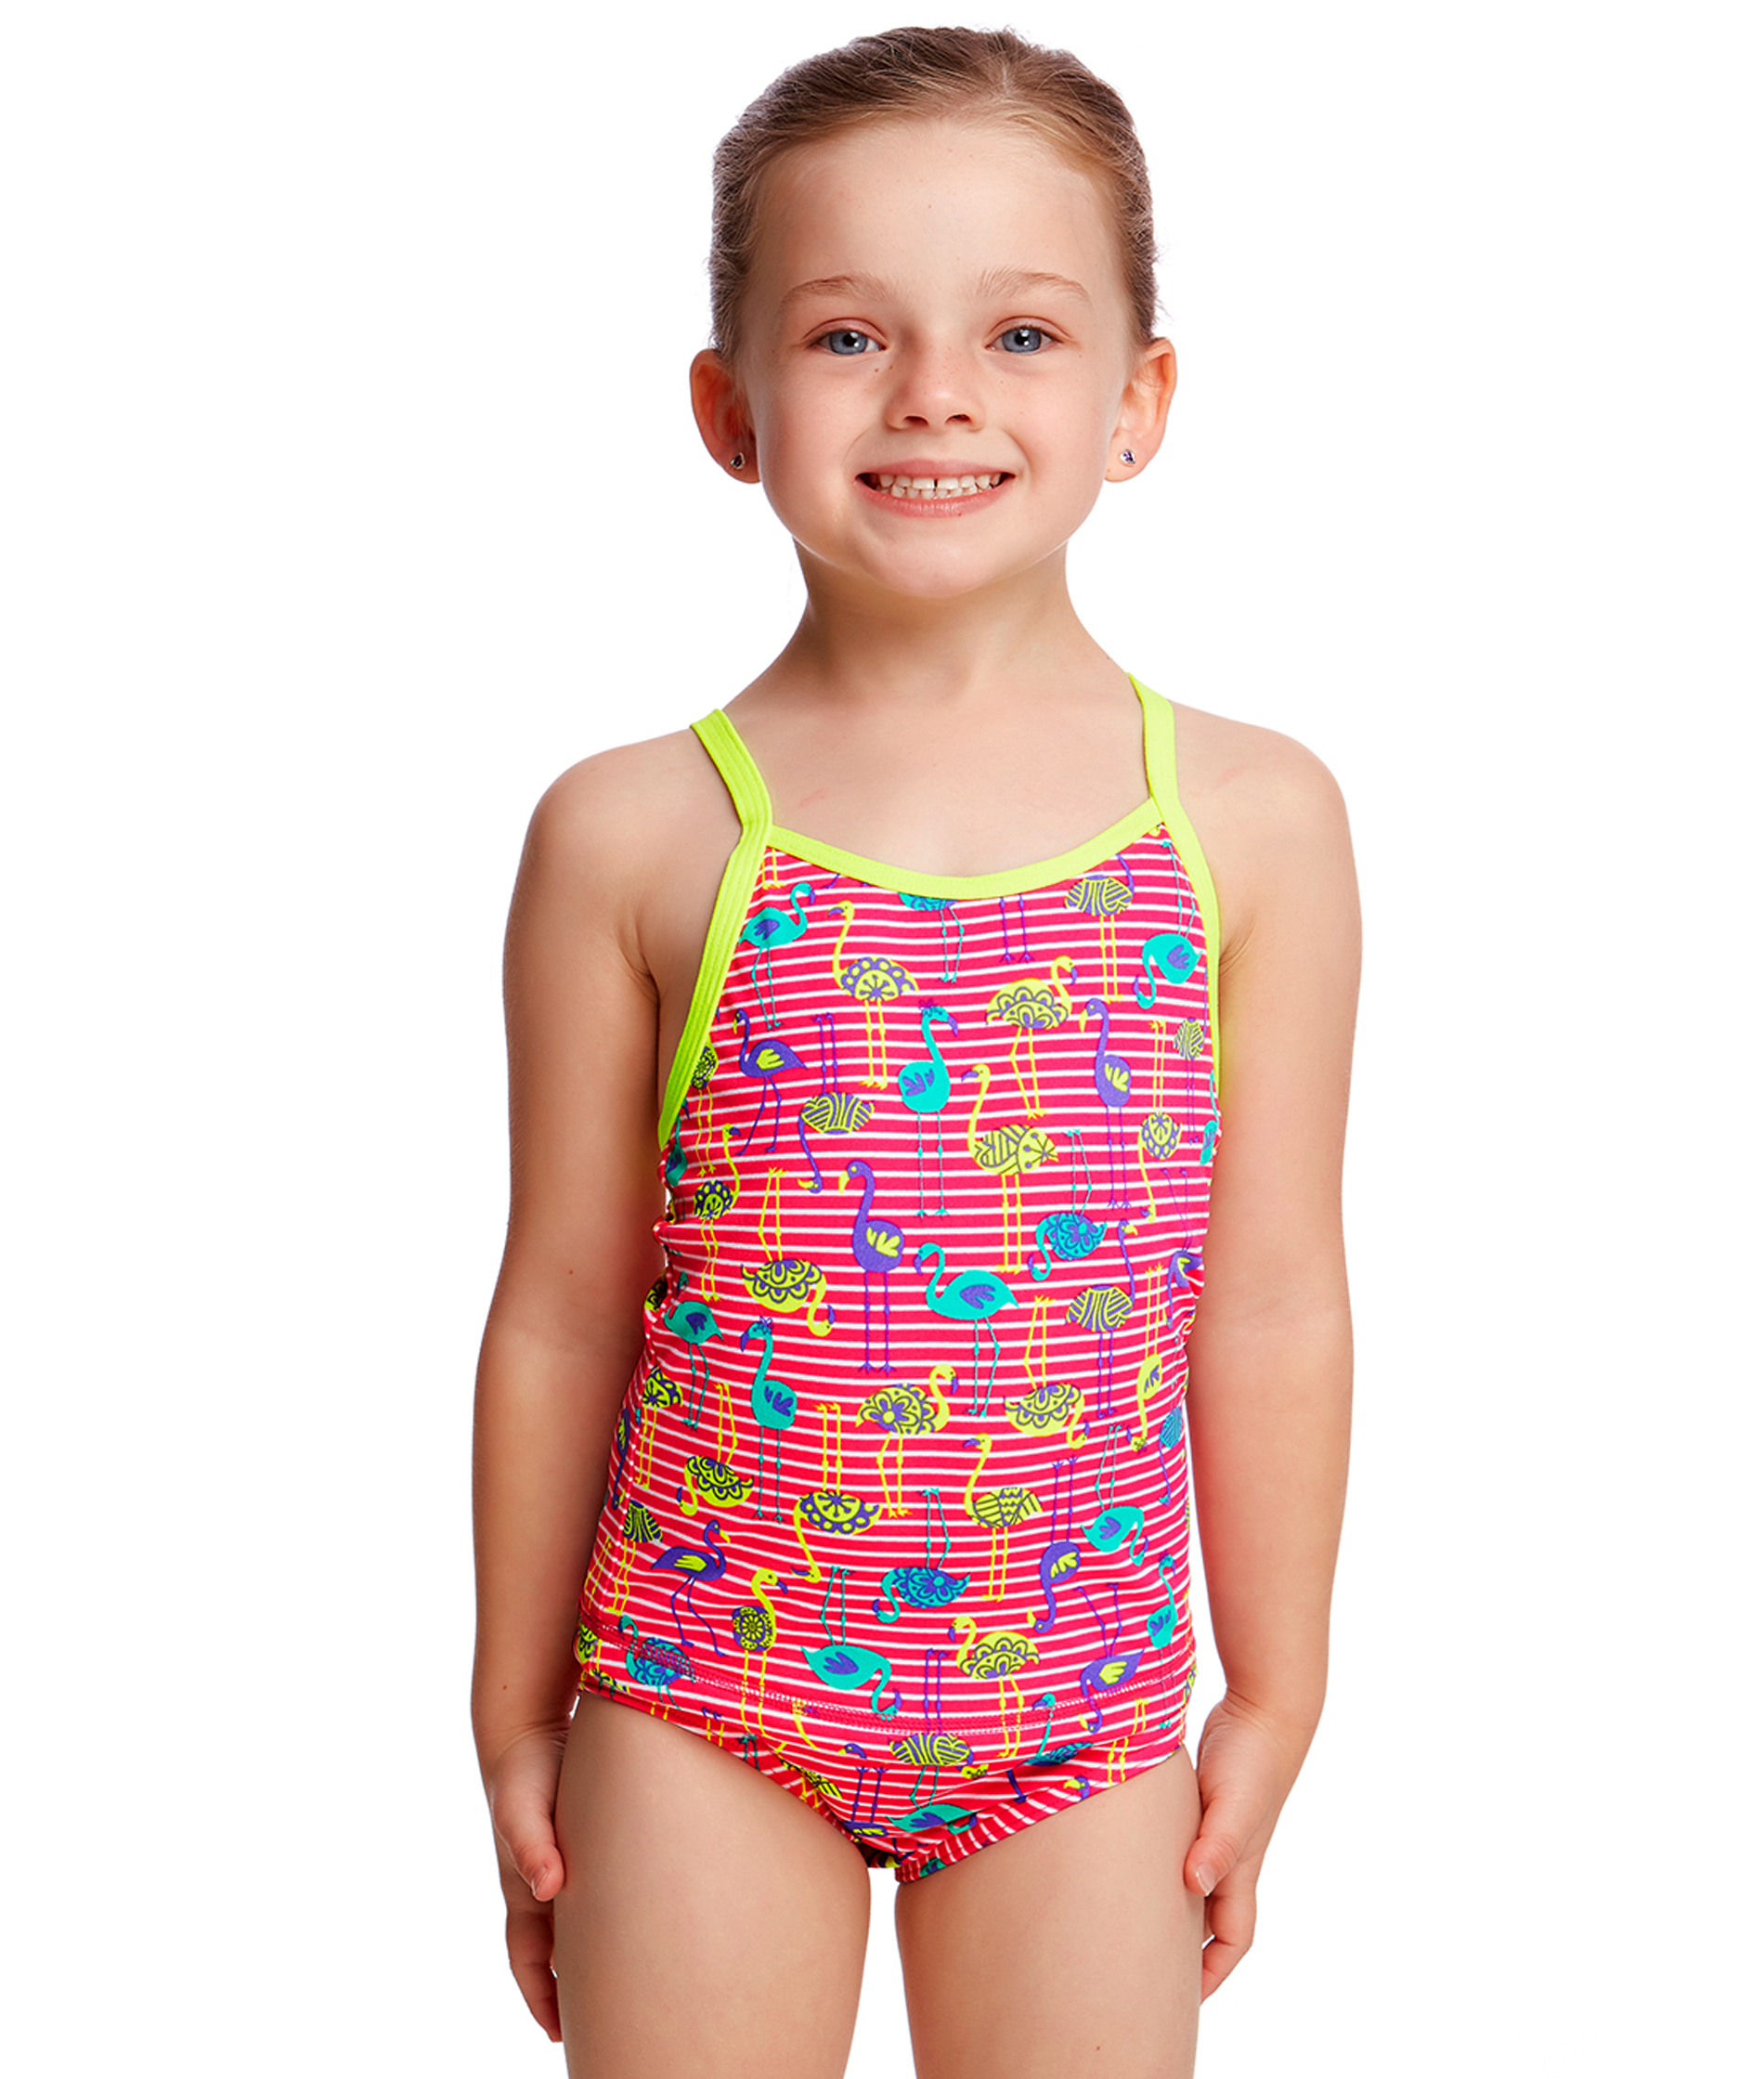 Funkita Toddler Girls Flaming Stripes Printed Tankini